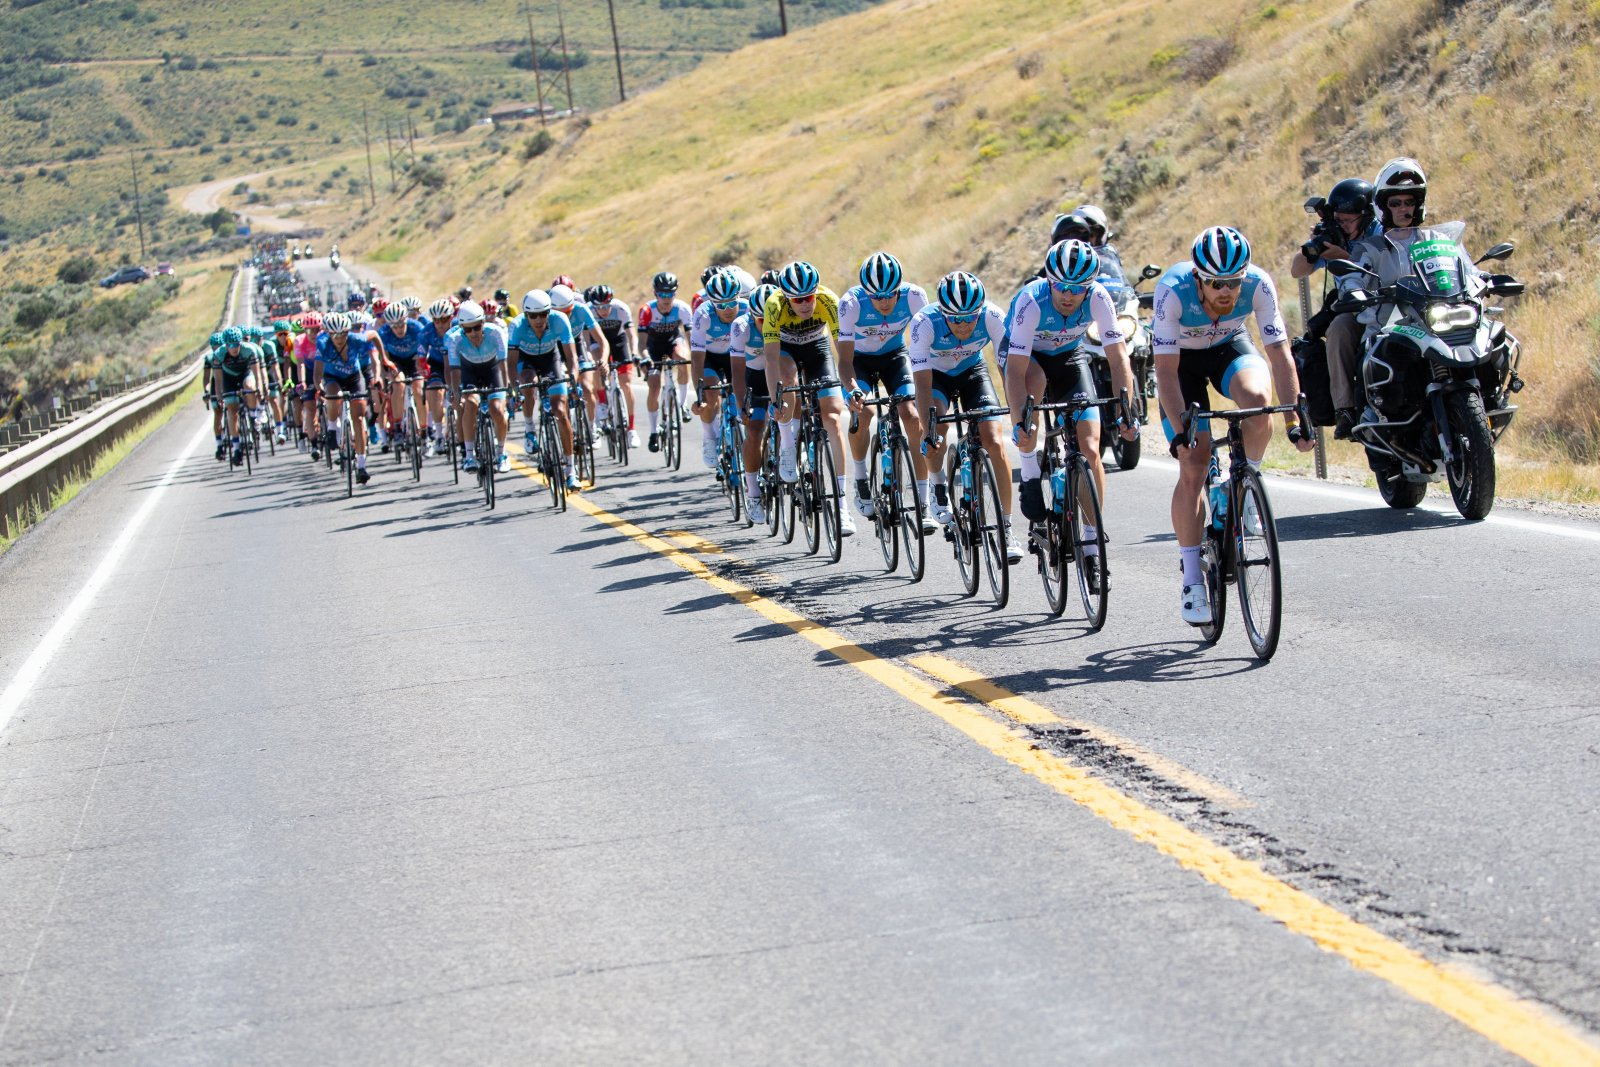 Israel Cycling Academy controls the front of the peloton.